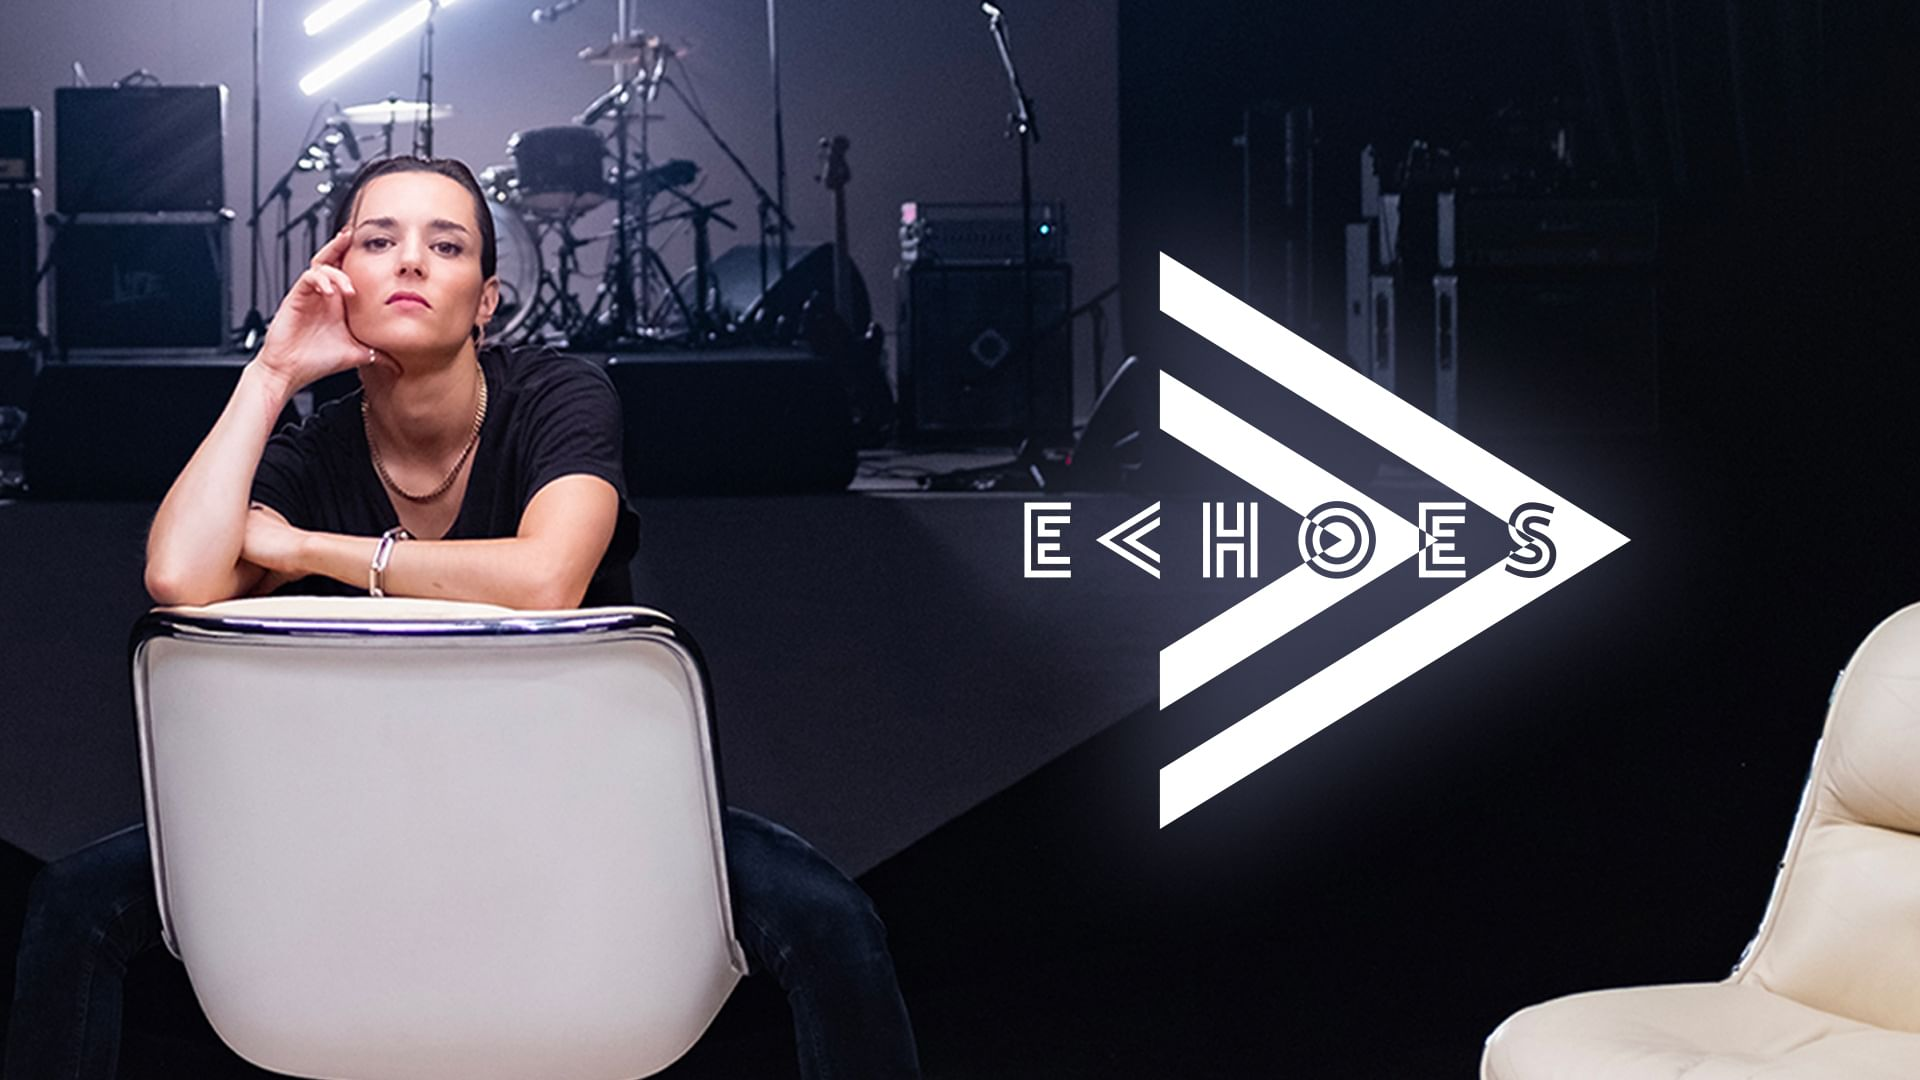 Echoes with Jehnny Beth